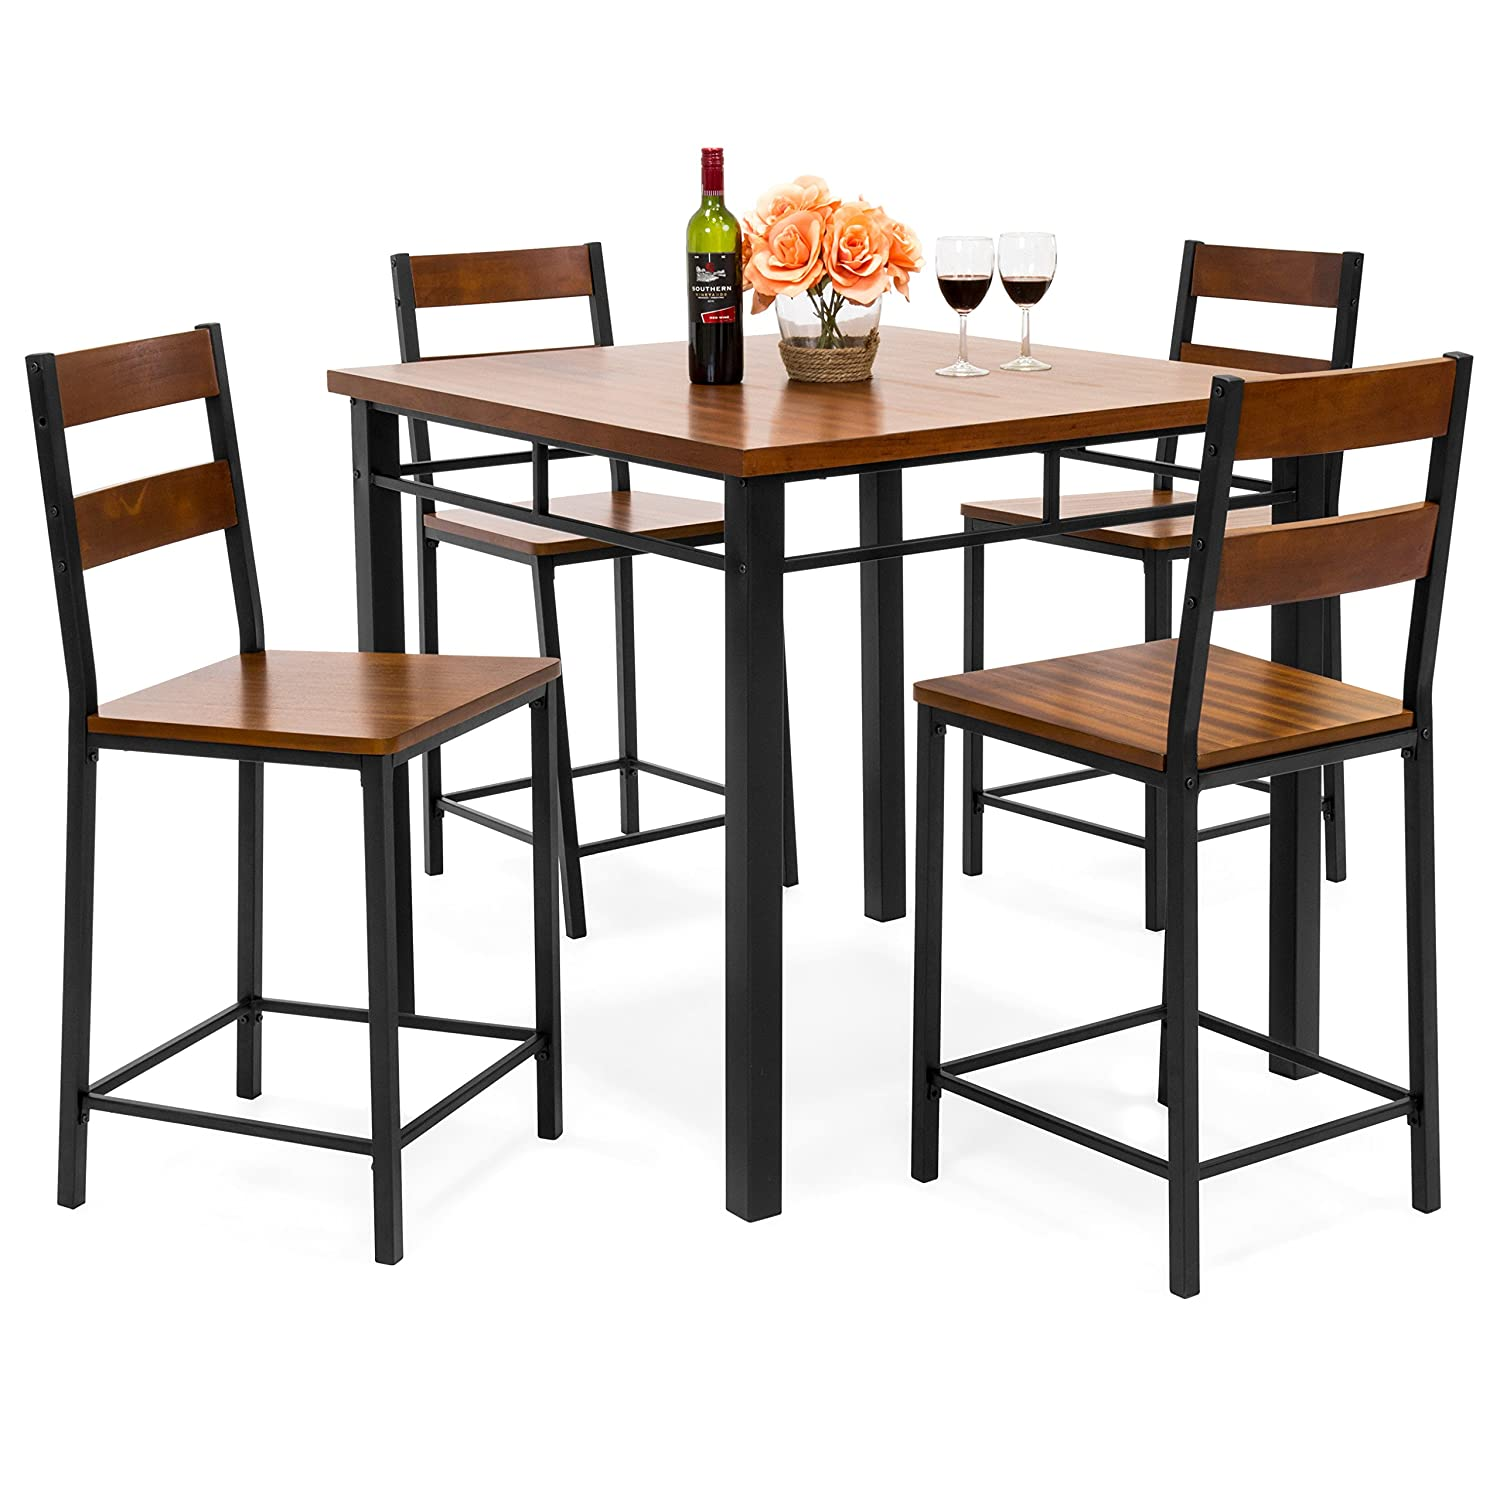 Best Choice Products 5-Piece Wood Finish Counter Height Square Table Dining Set w/ 4 Bar Stools, Steel Frame